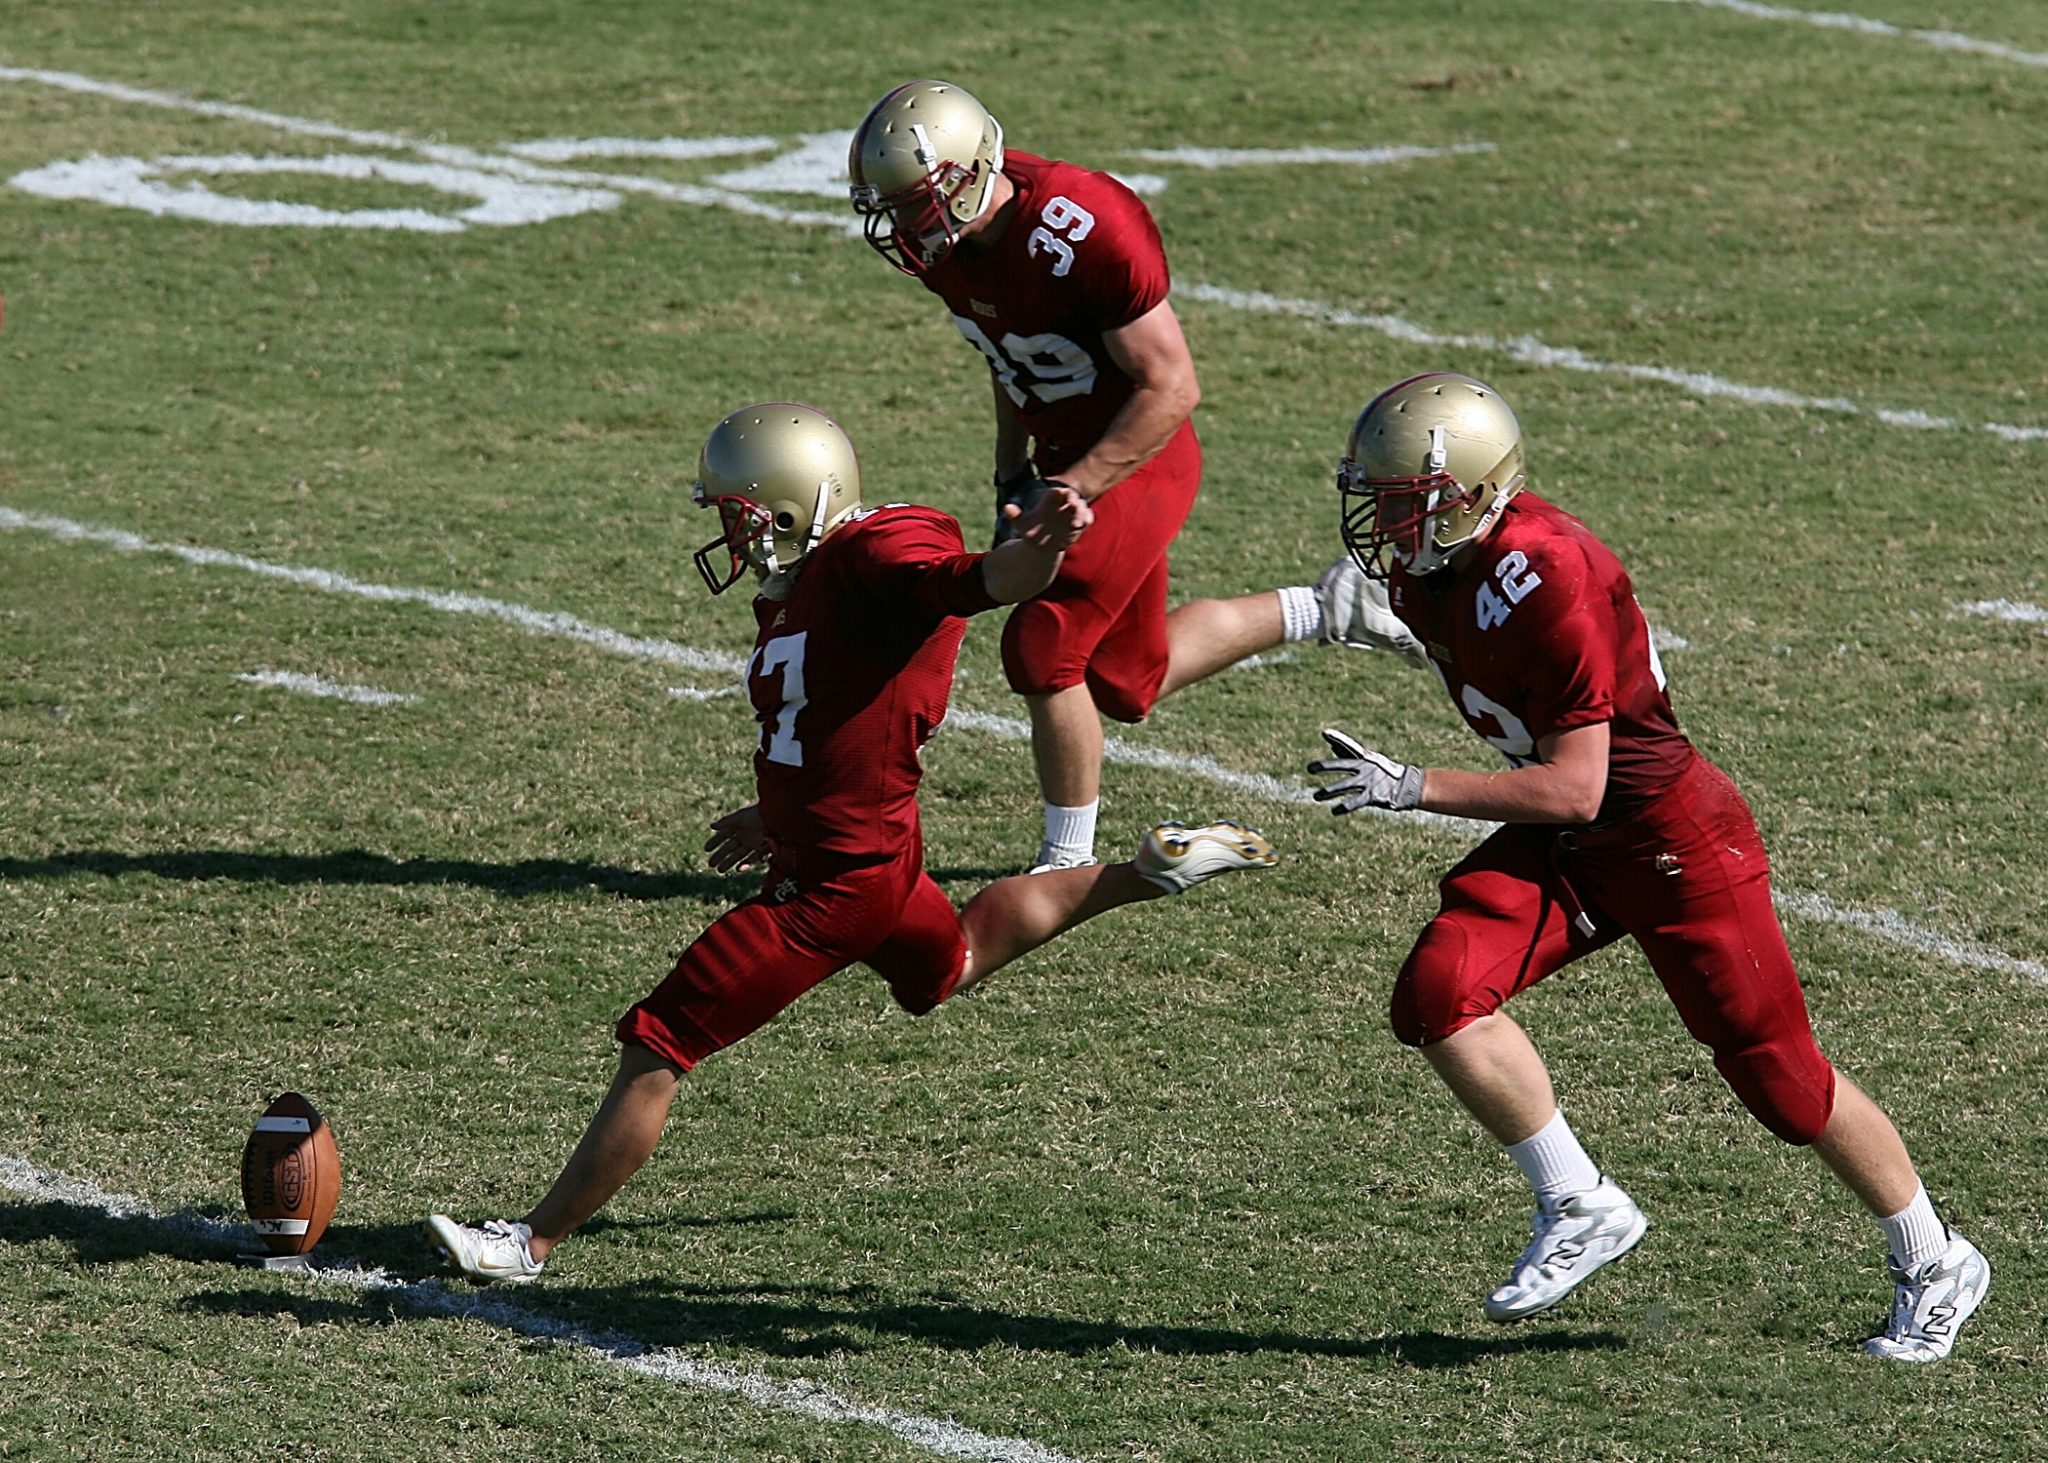 Gifts for High School Football Players